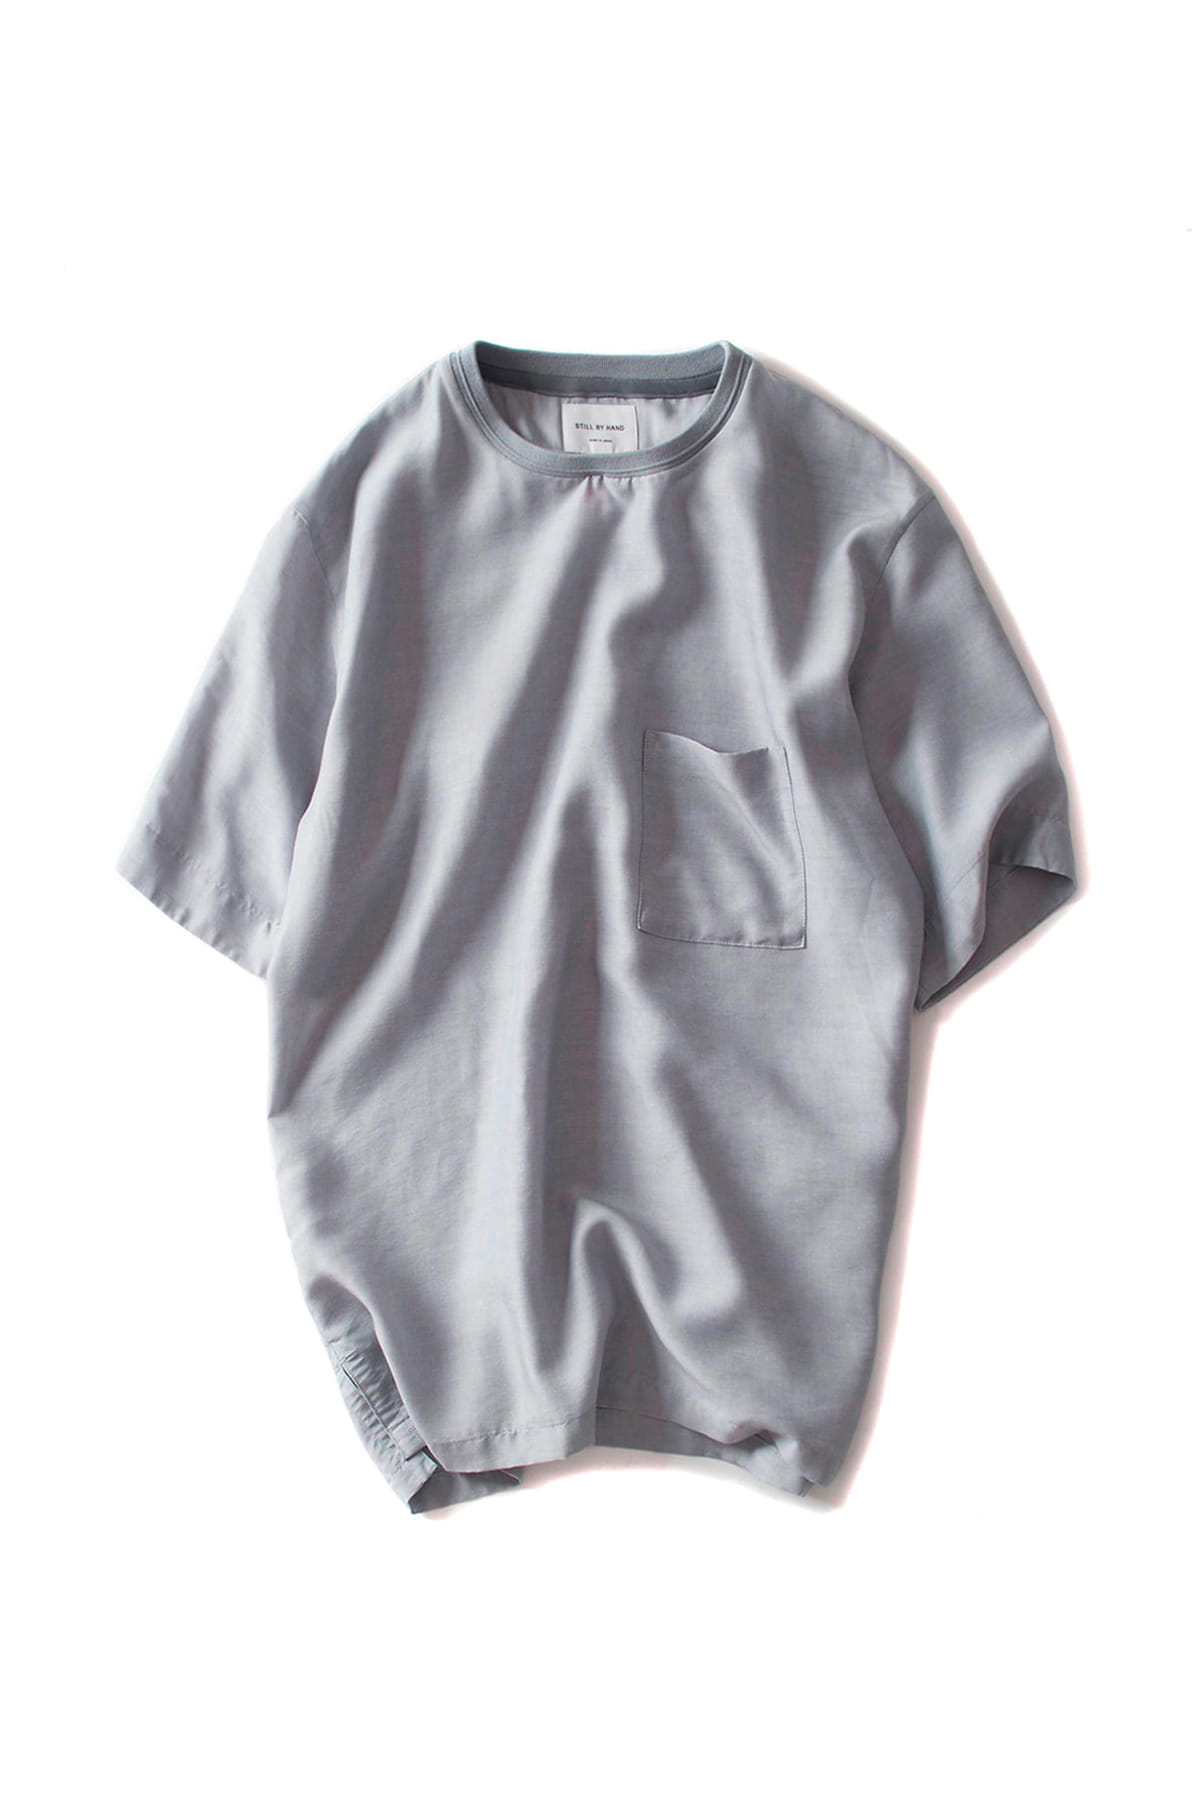 Still by Hand : Over Fit Crew Shirt (Grey)